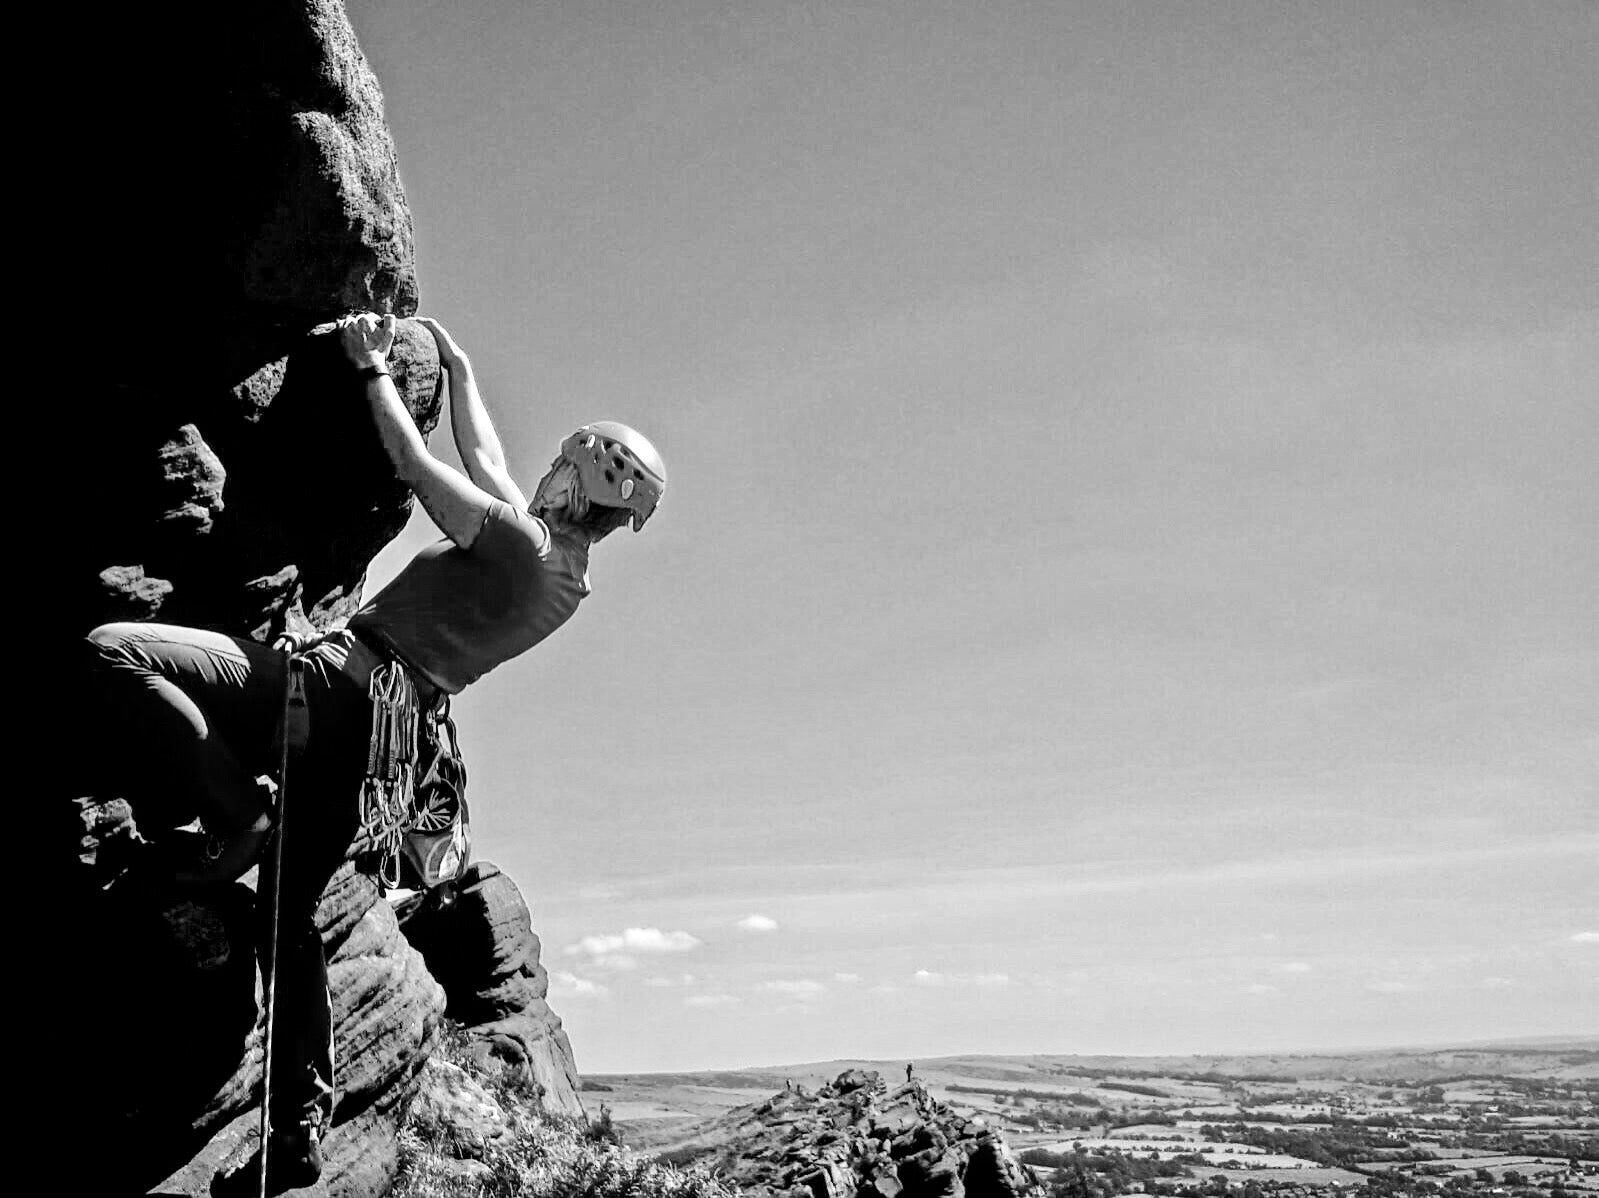 The roaches rock climbing